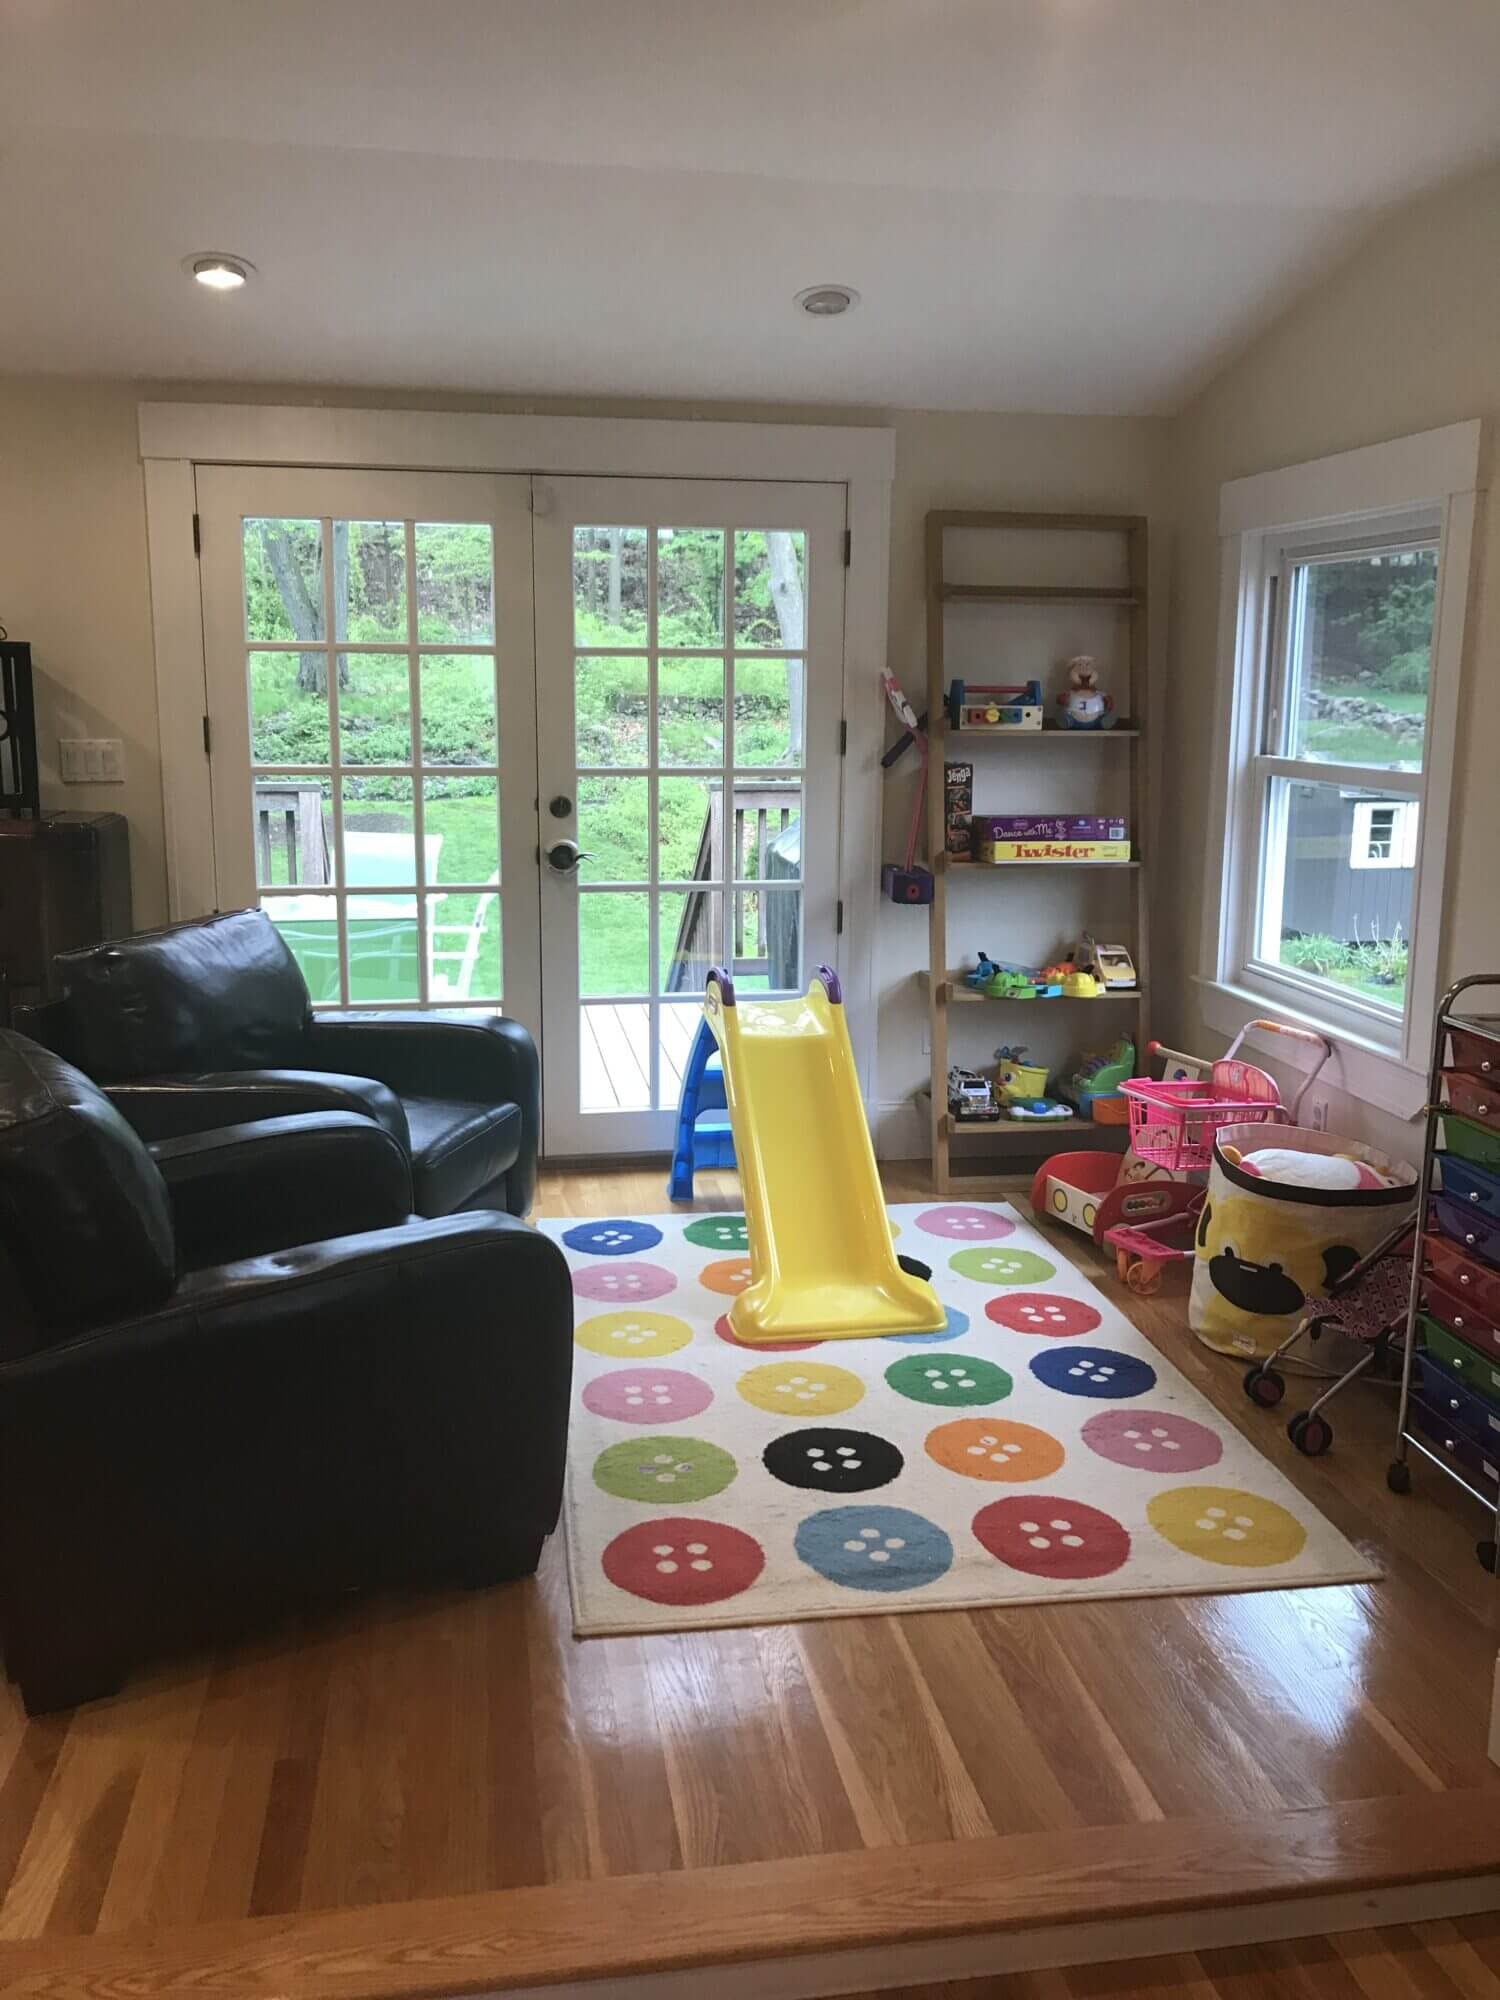 Clean and organized play area